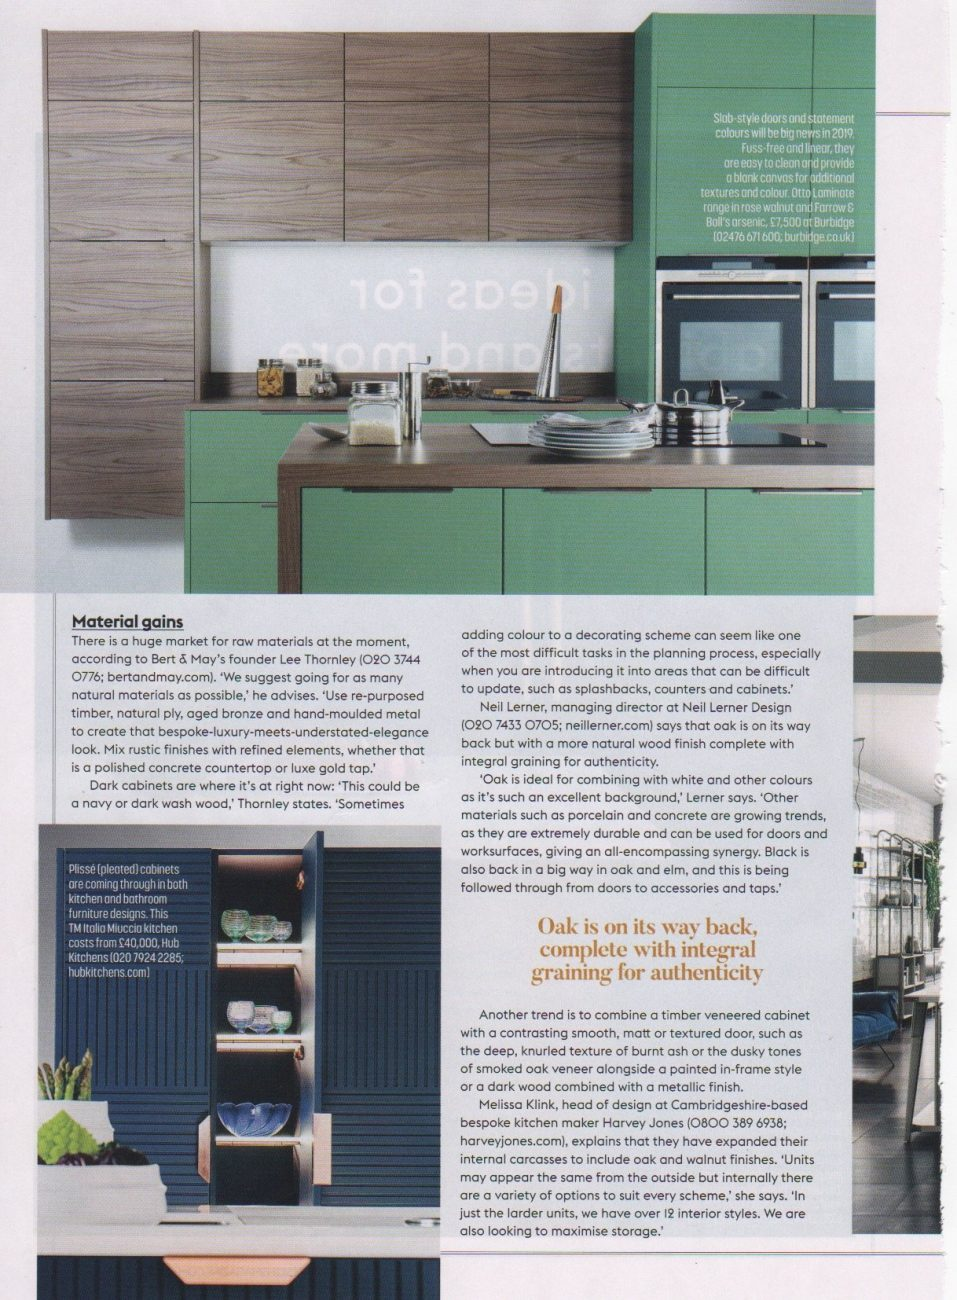 Part 2 of an article in Grand Designs magazine on design ideas for cabinets